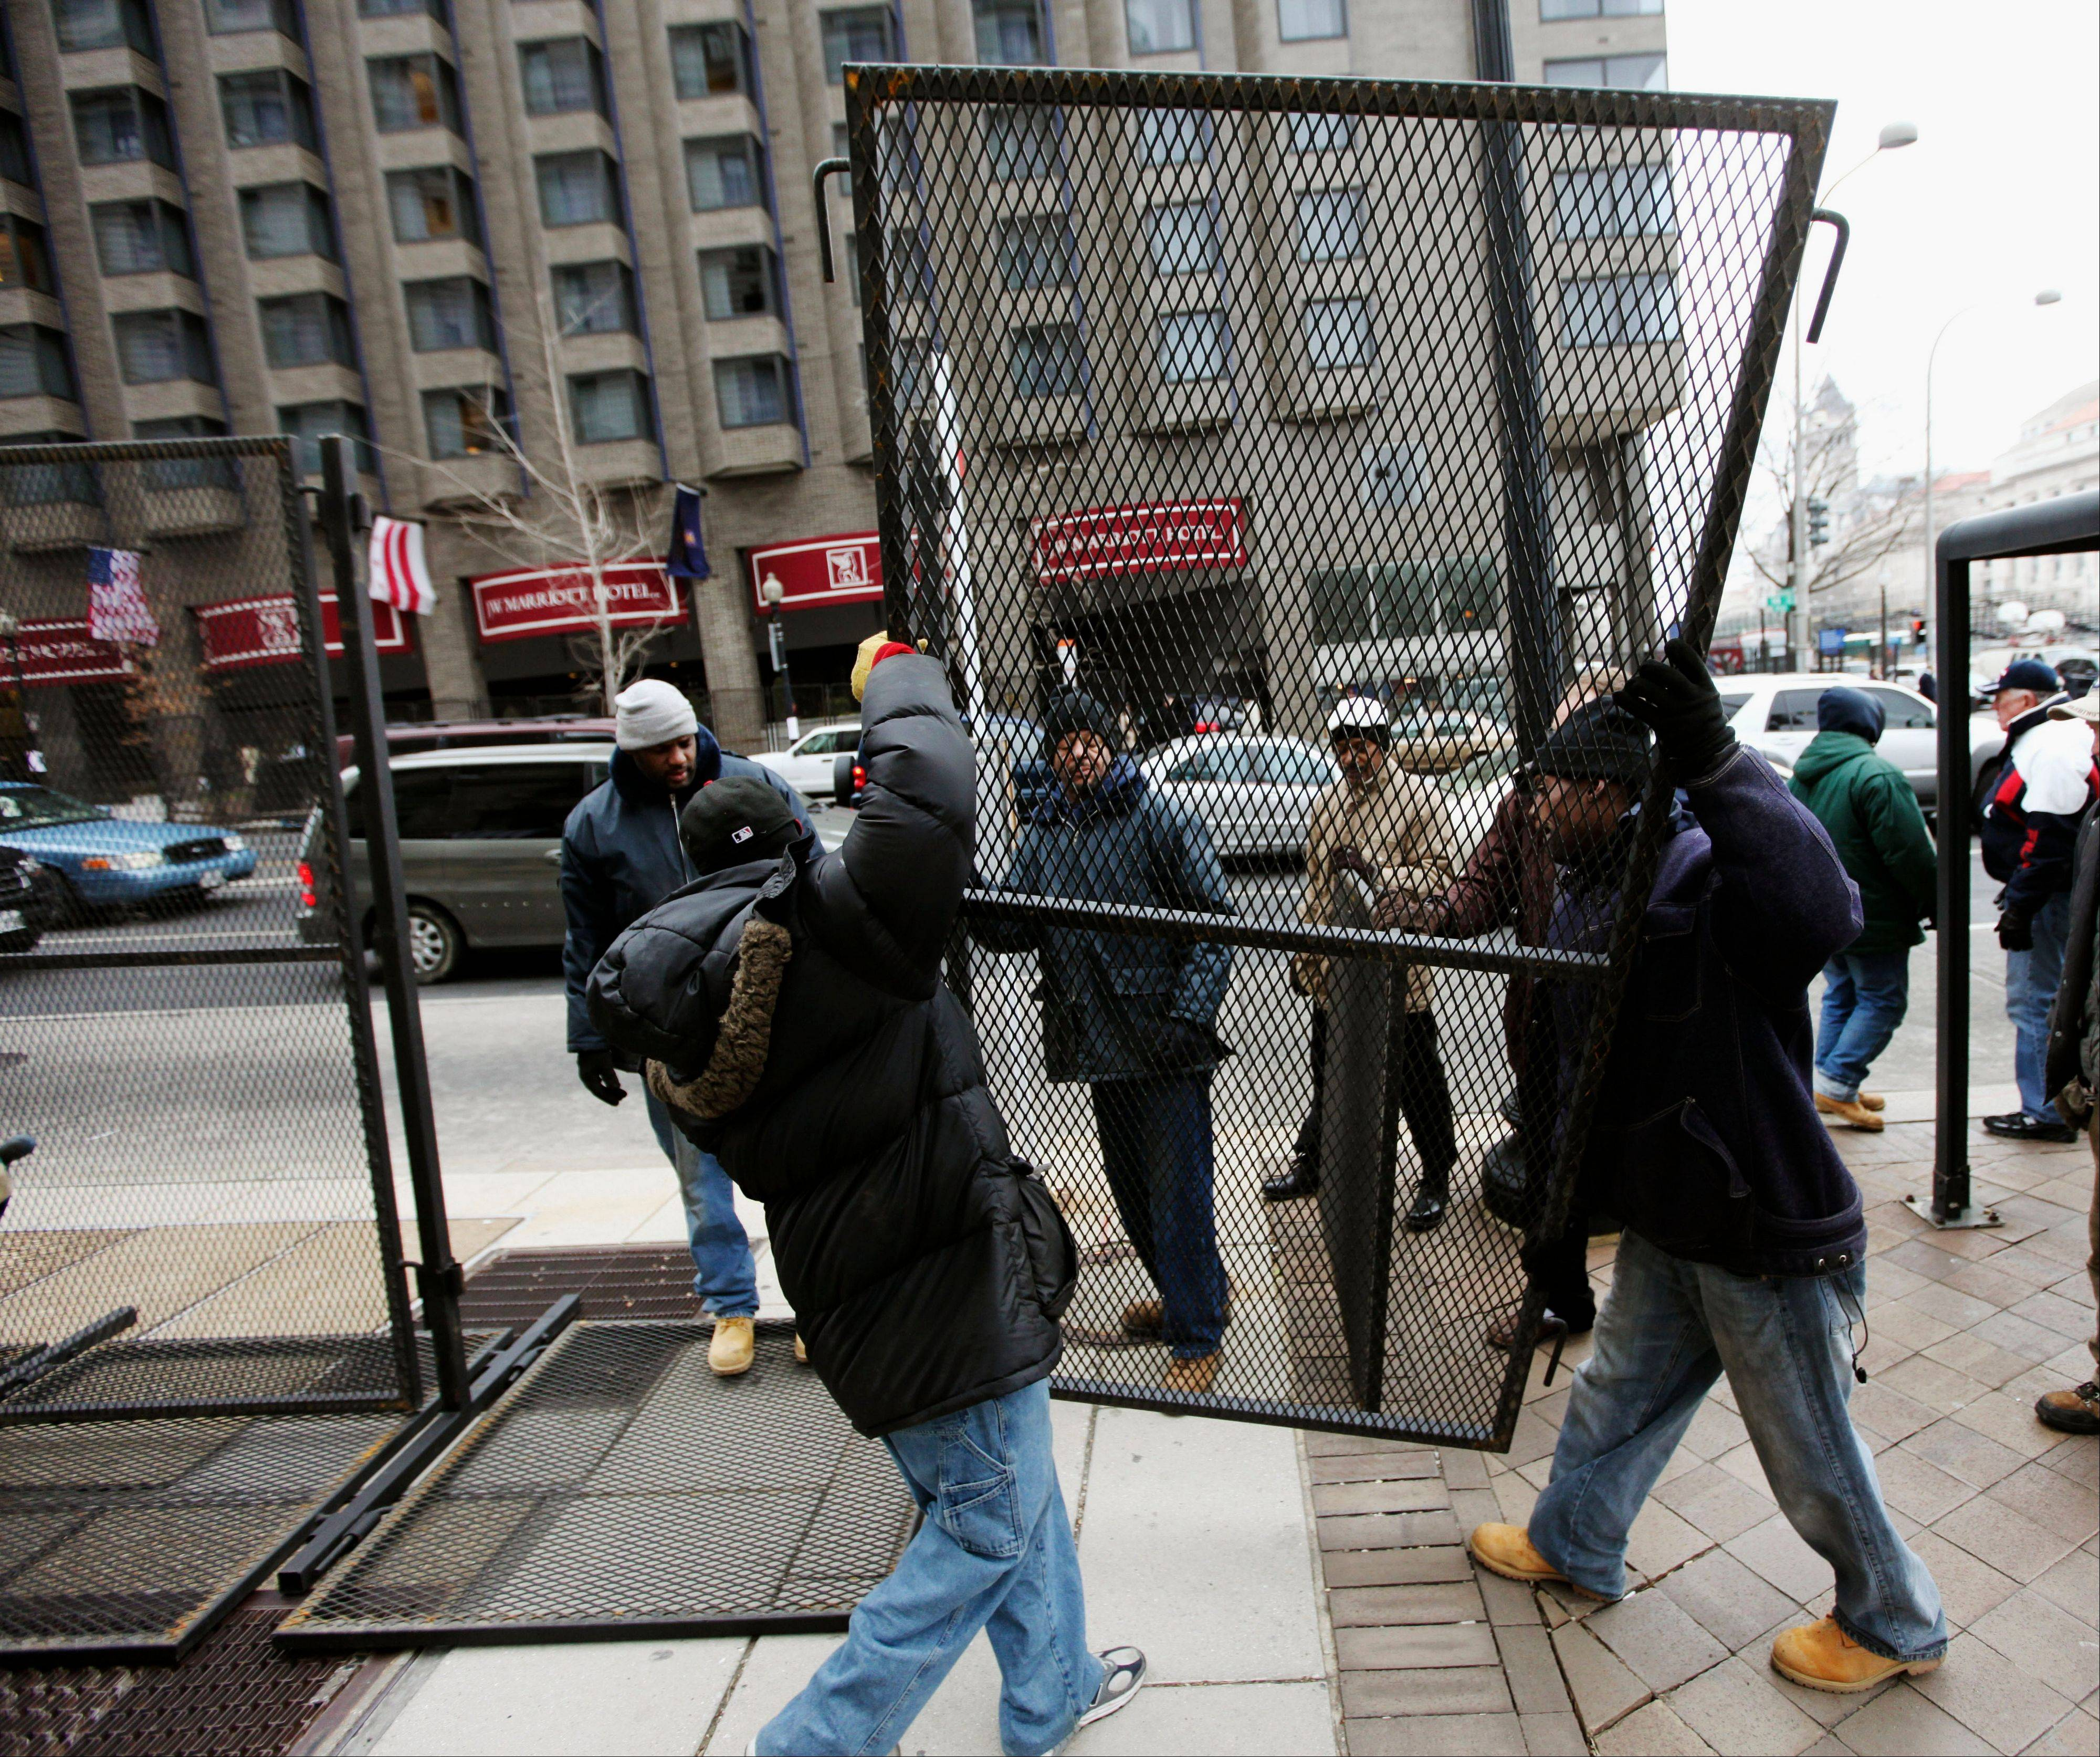 Associated Press/Jan. 18, 2009Workers install security barricades near Pennsylvania Ave. in Washington before President Obama's first inauguration. Obama's second inauguration figures to be significantly smaller than the record-breaking turnout of 2009.